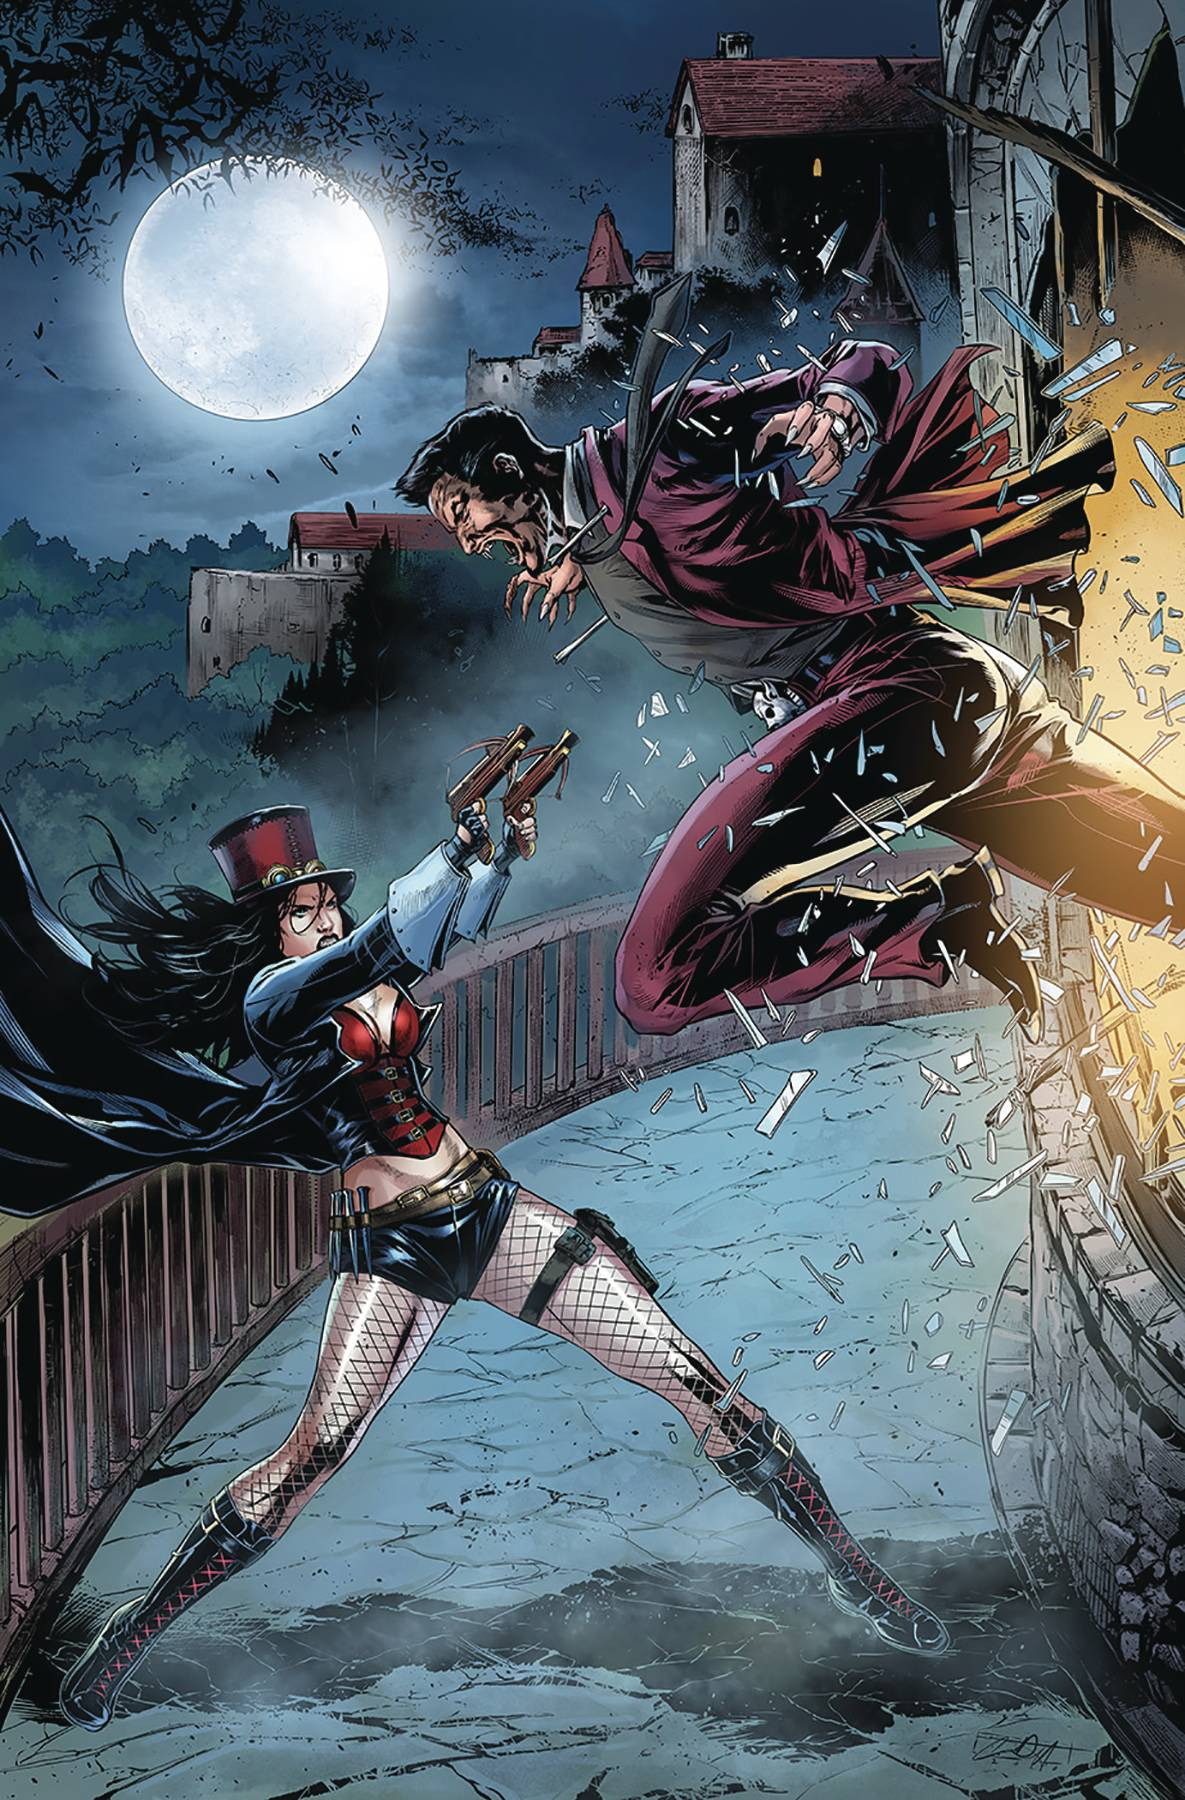 VAN HELSING VS LEAGUE MONSTERS #5 CVR B WHITE (RES)